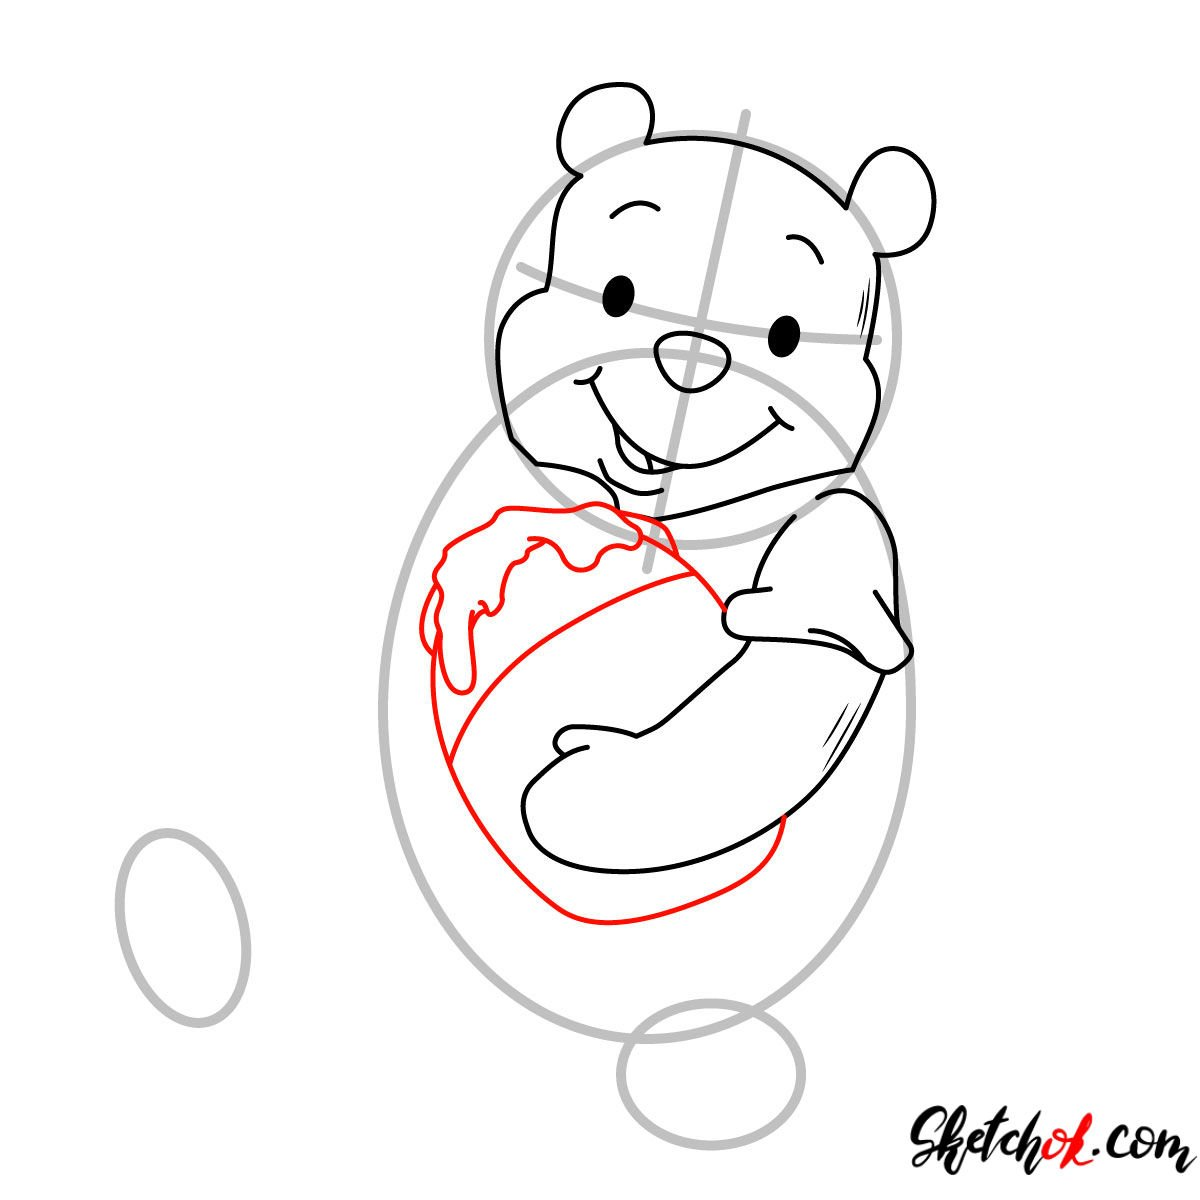 How to draw Winnie-the-Pooh eating honey - step 05